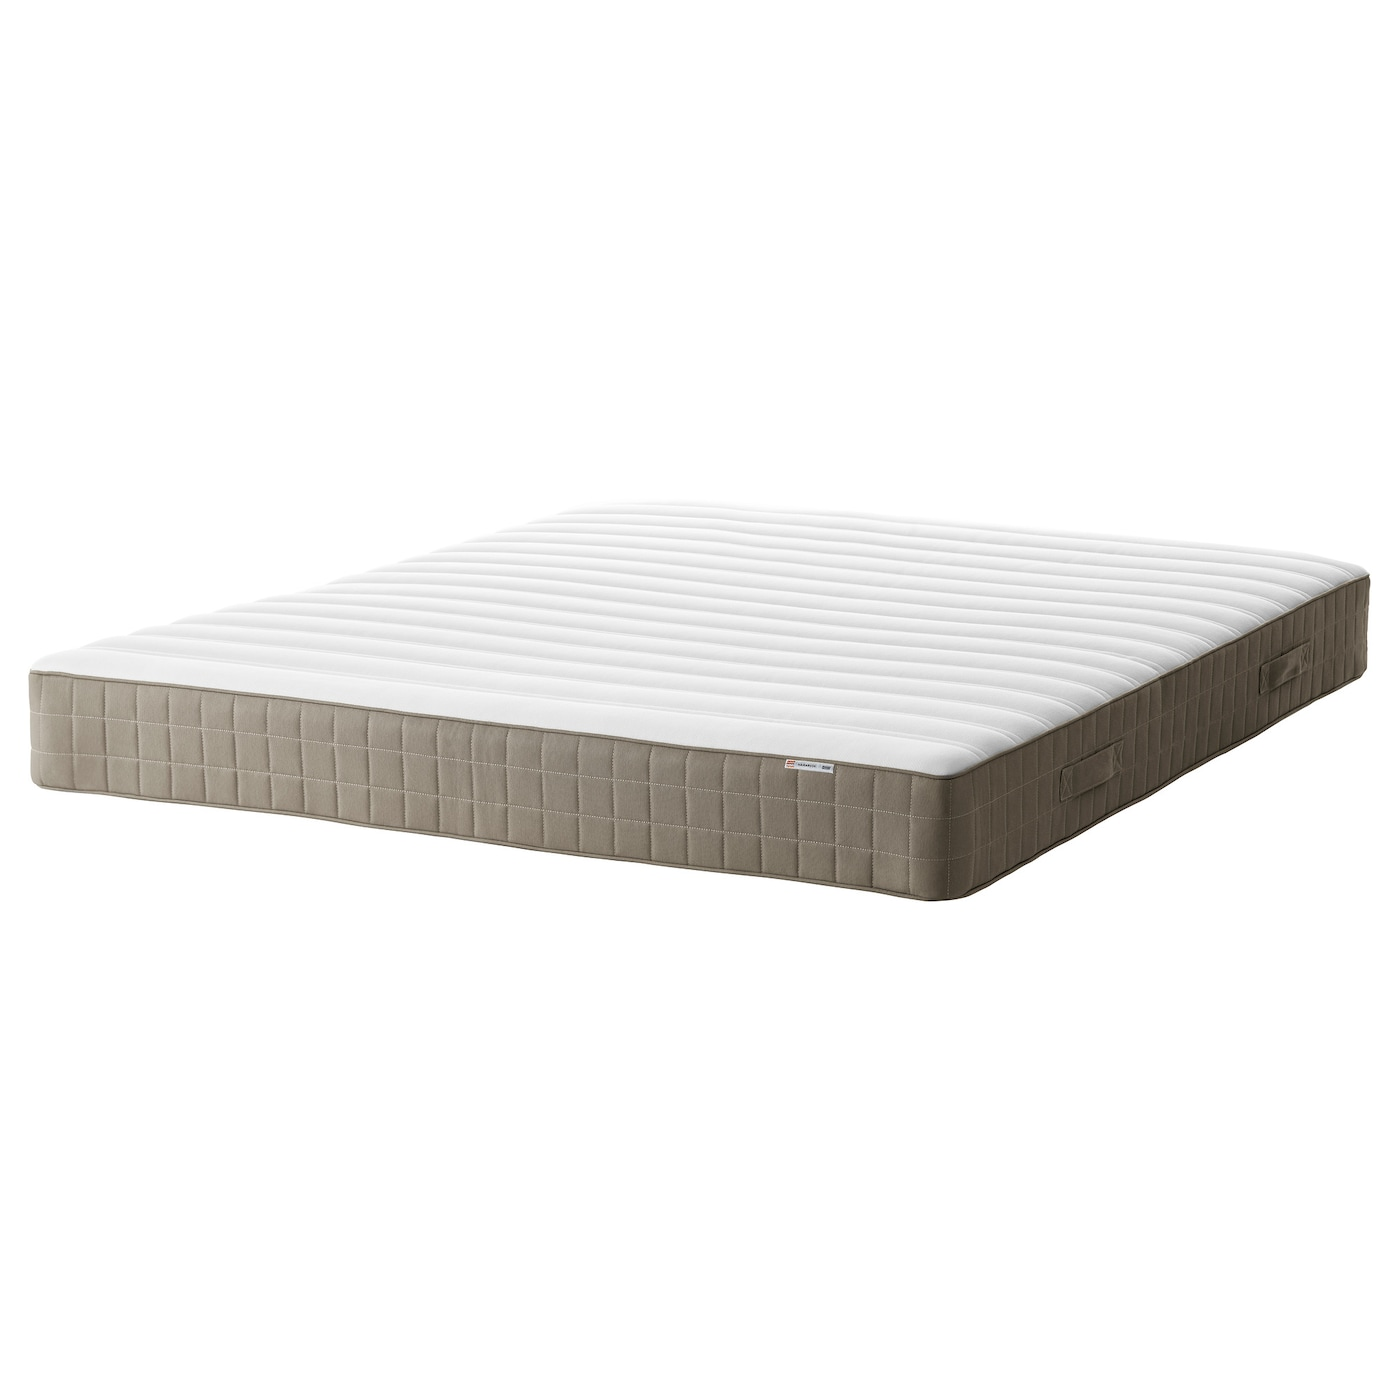 hamarvik matelas ressorts mi ferme beige fonc 160 x 200 cm ikea. Black Bedroom Furniture Sets. Home Design Ideas